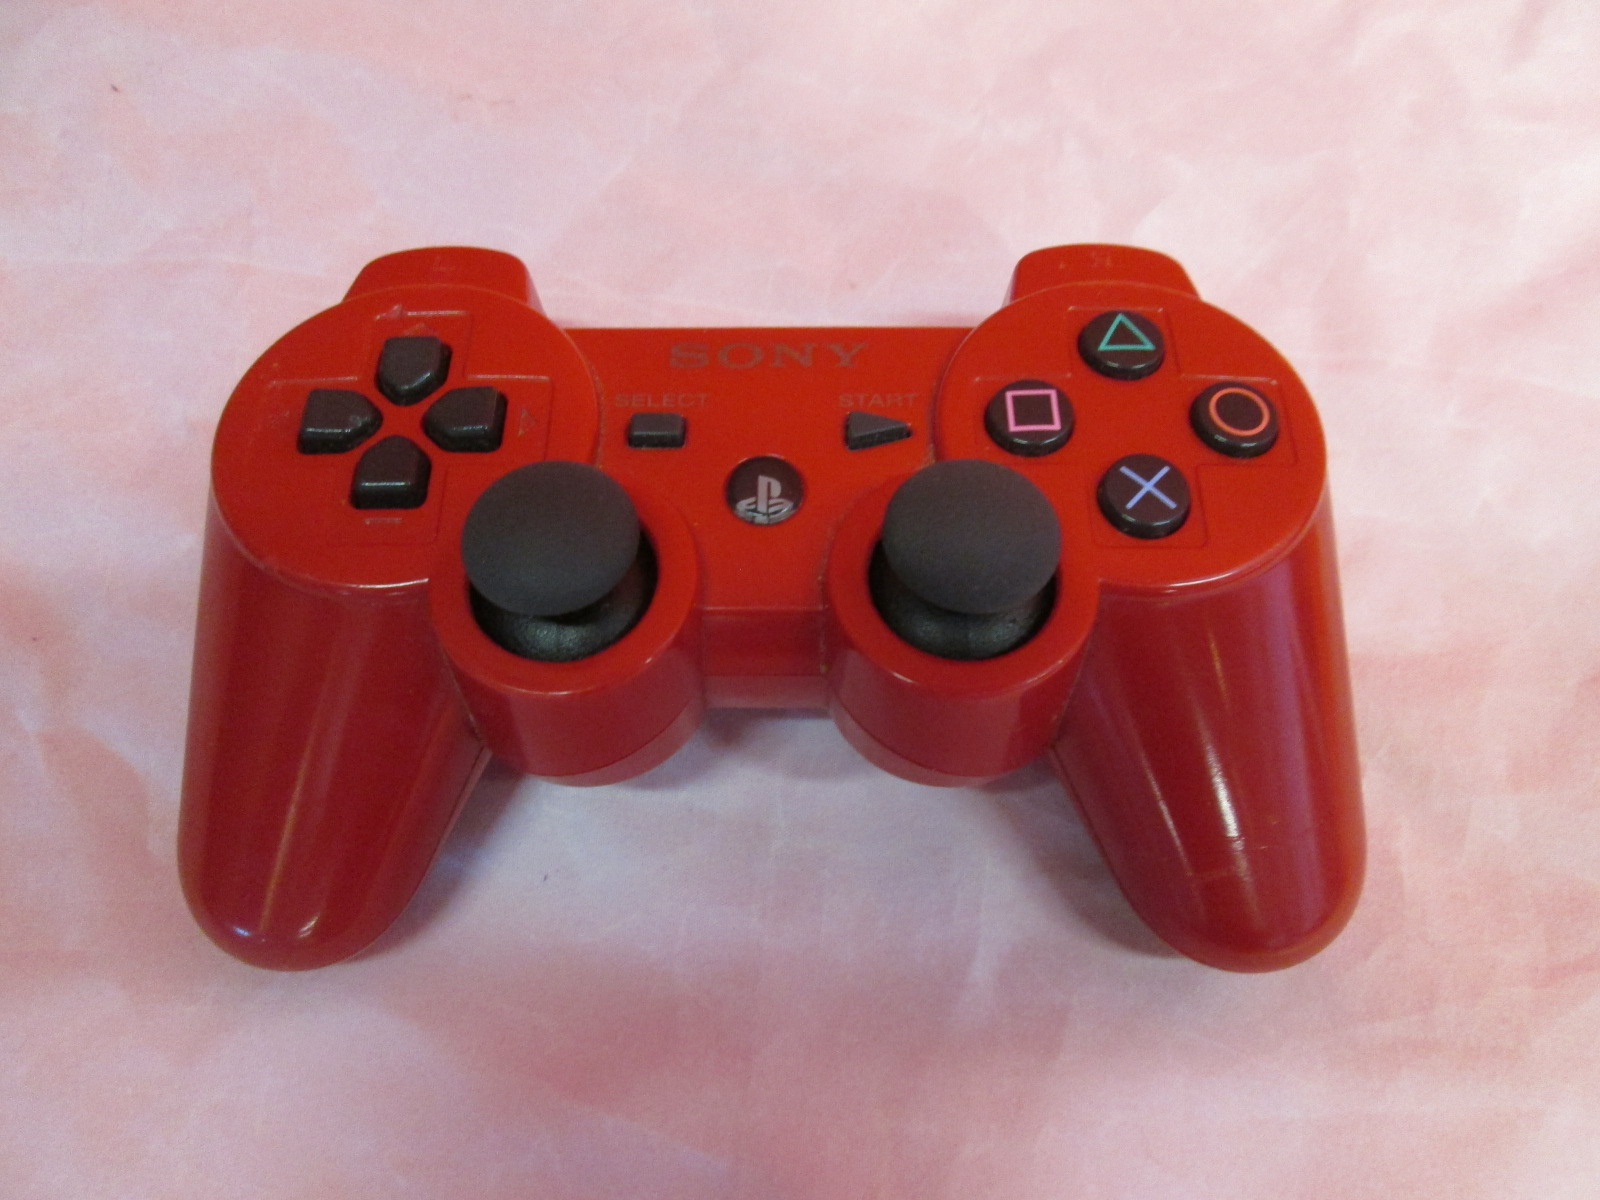 ps3 remote control instructions